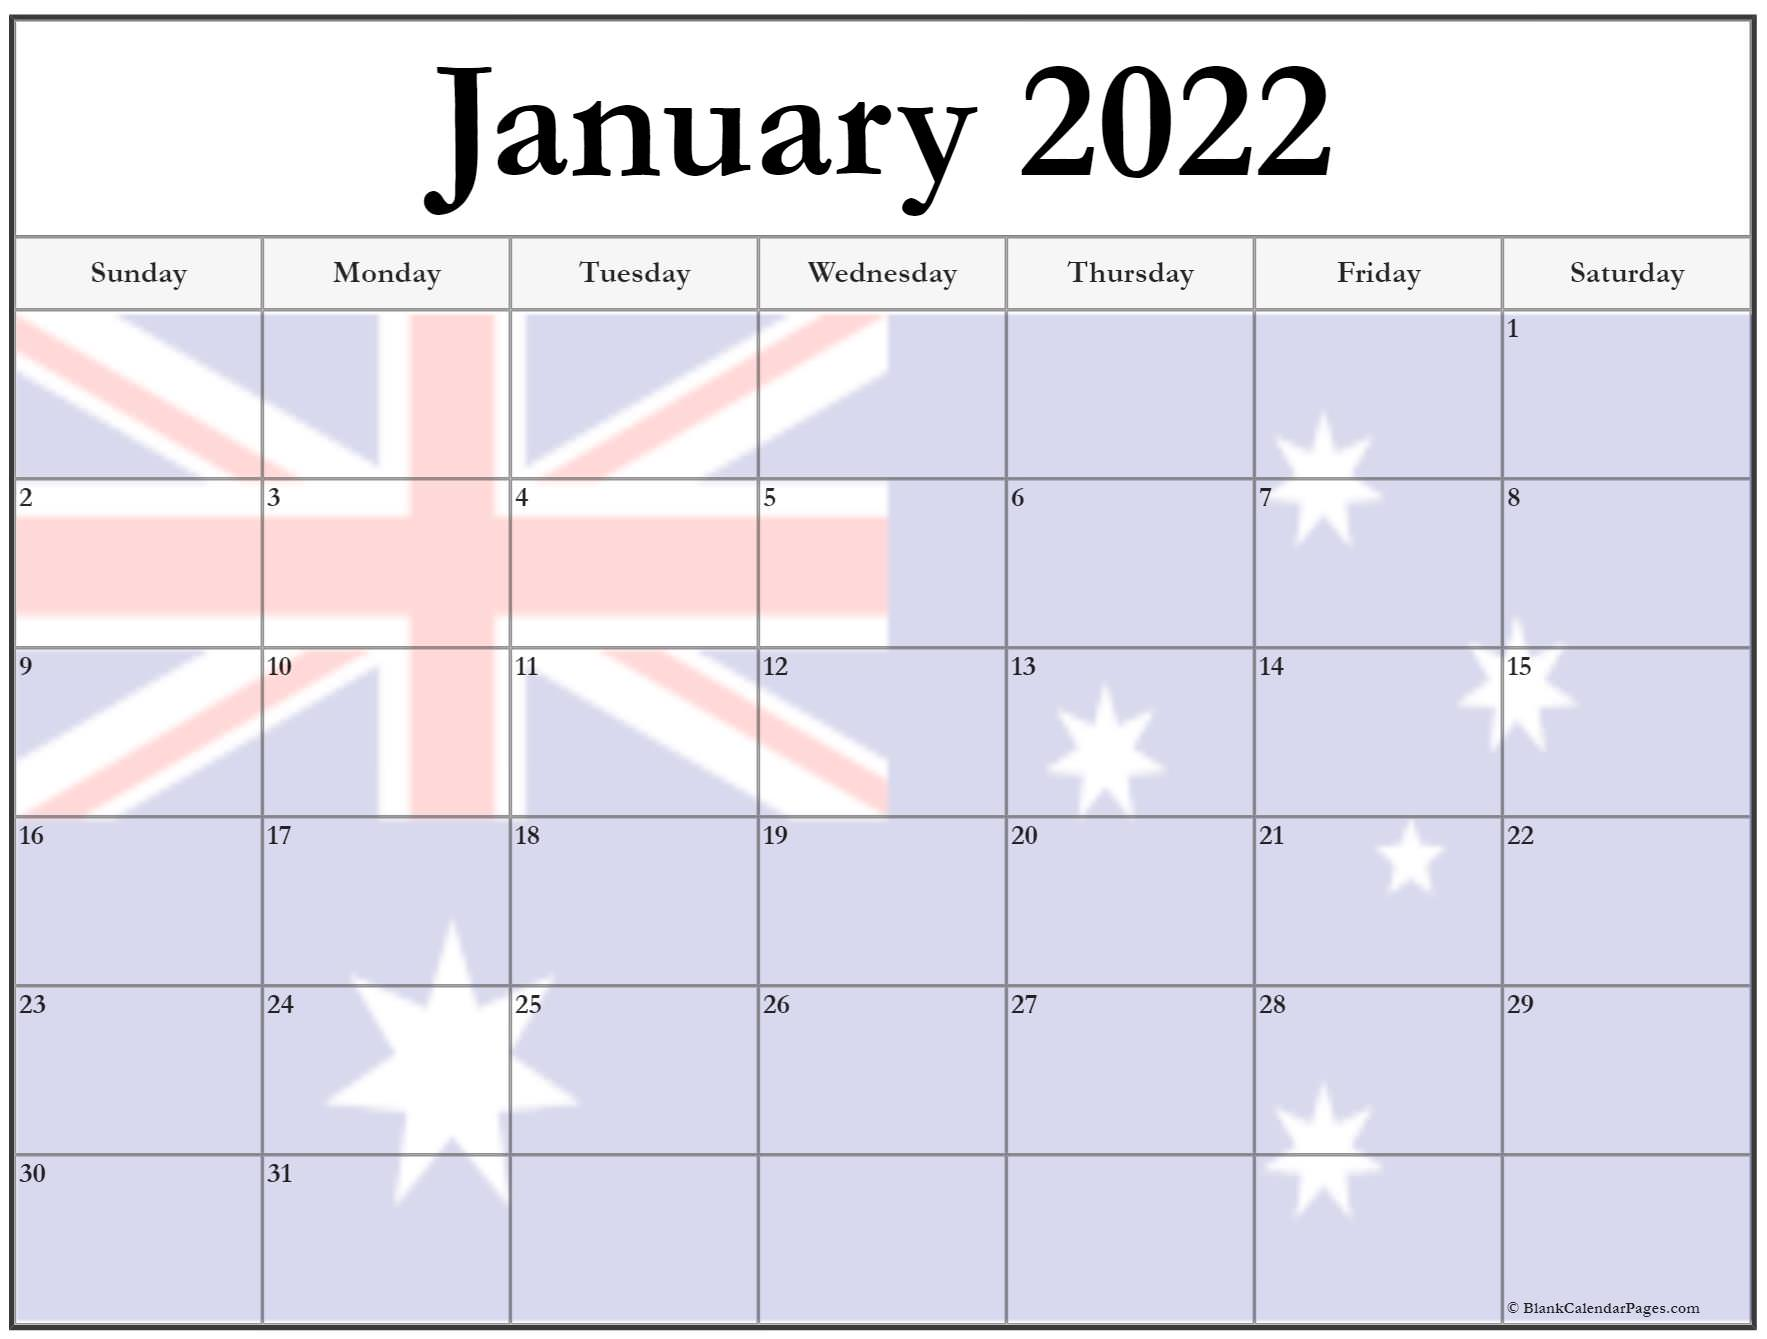 Collection of January 2022 photo calendars with image filters.